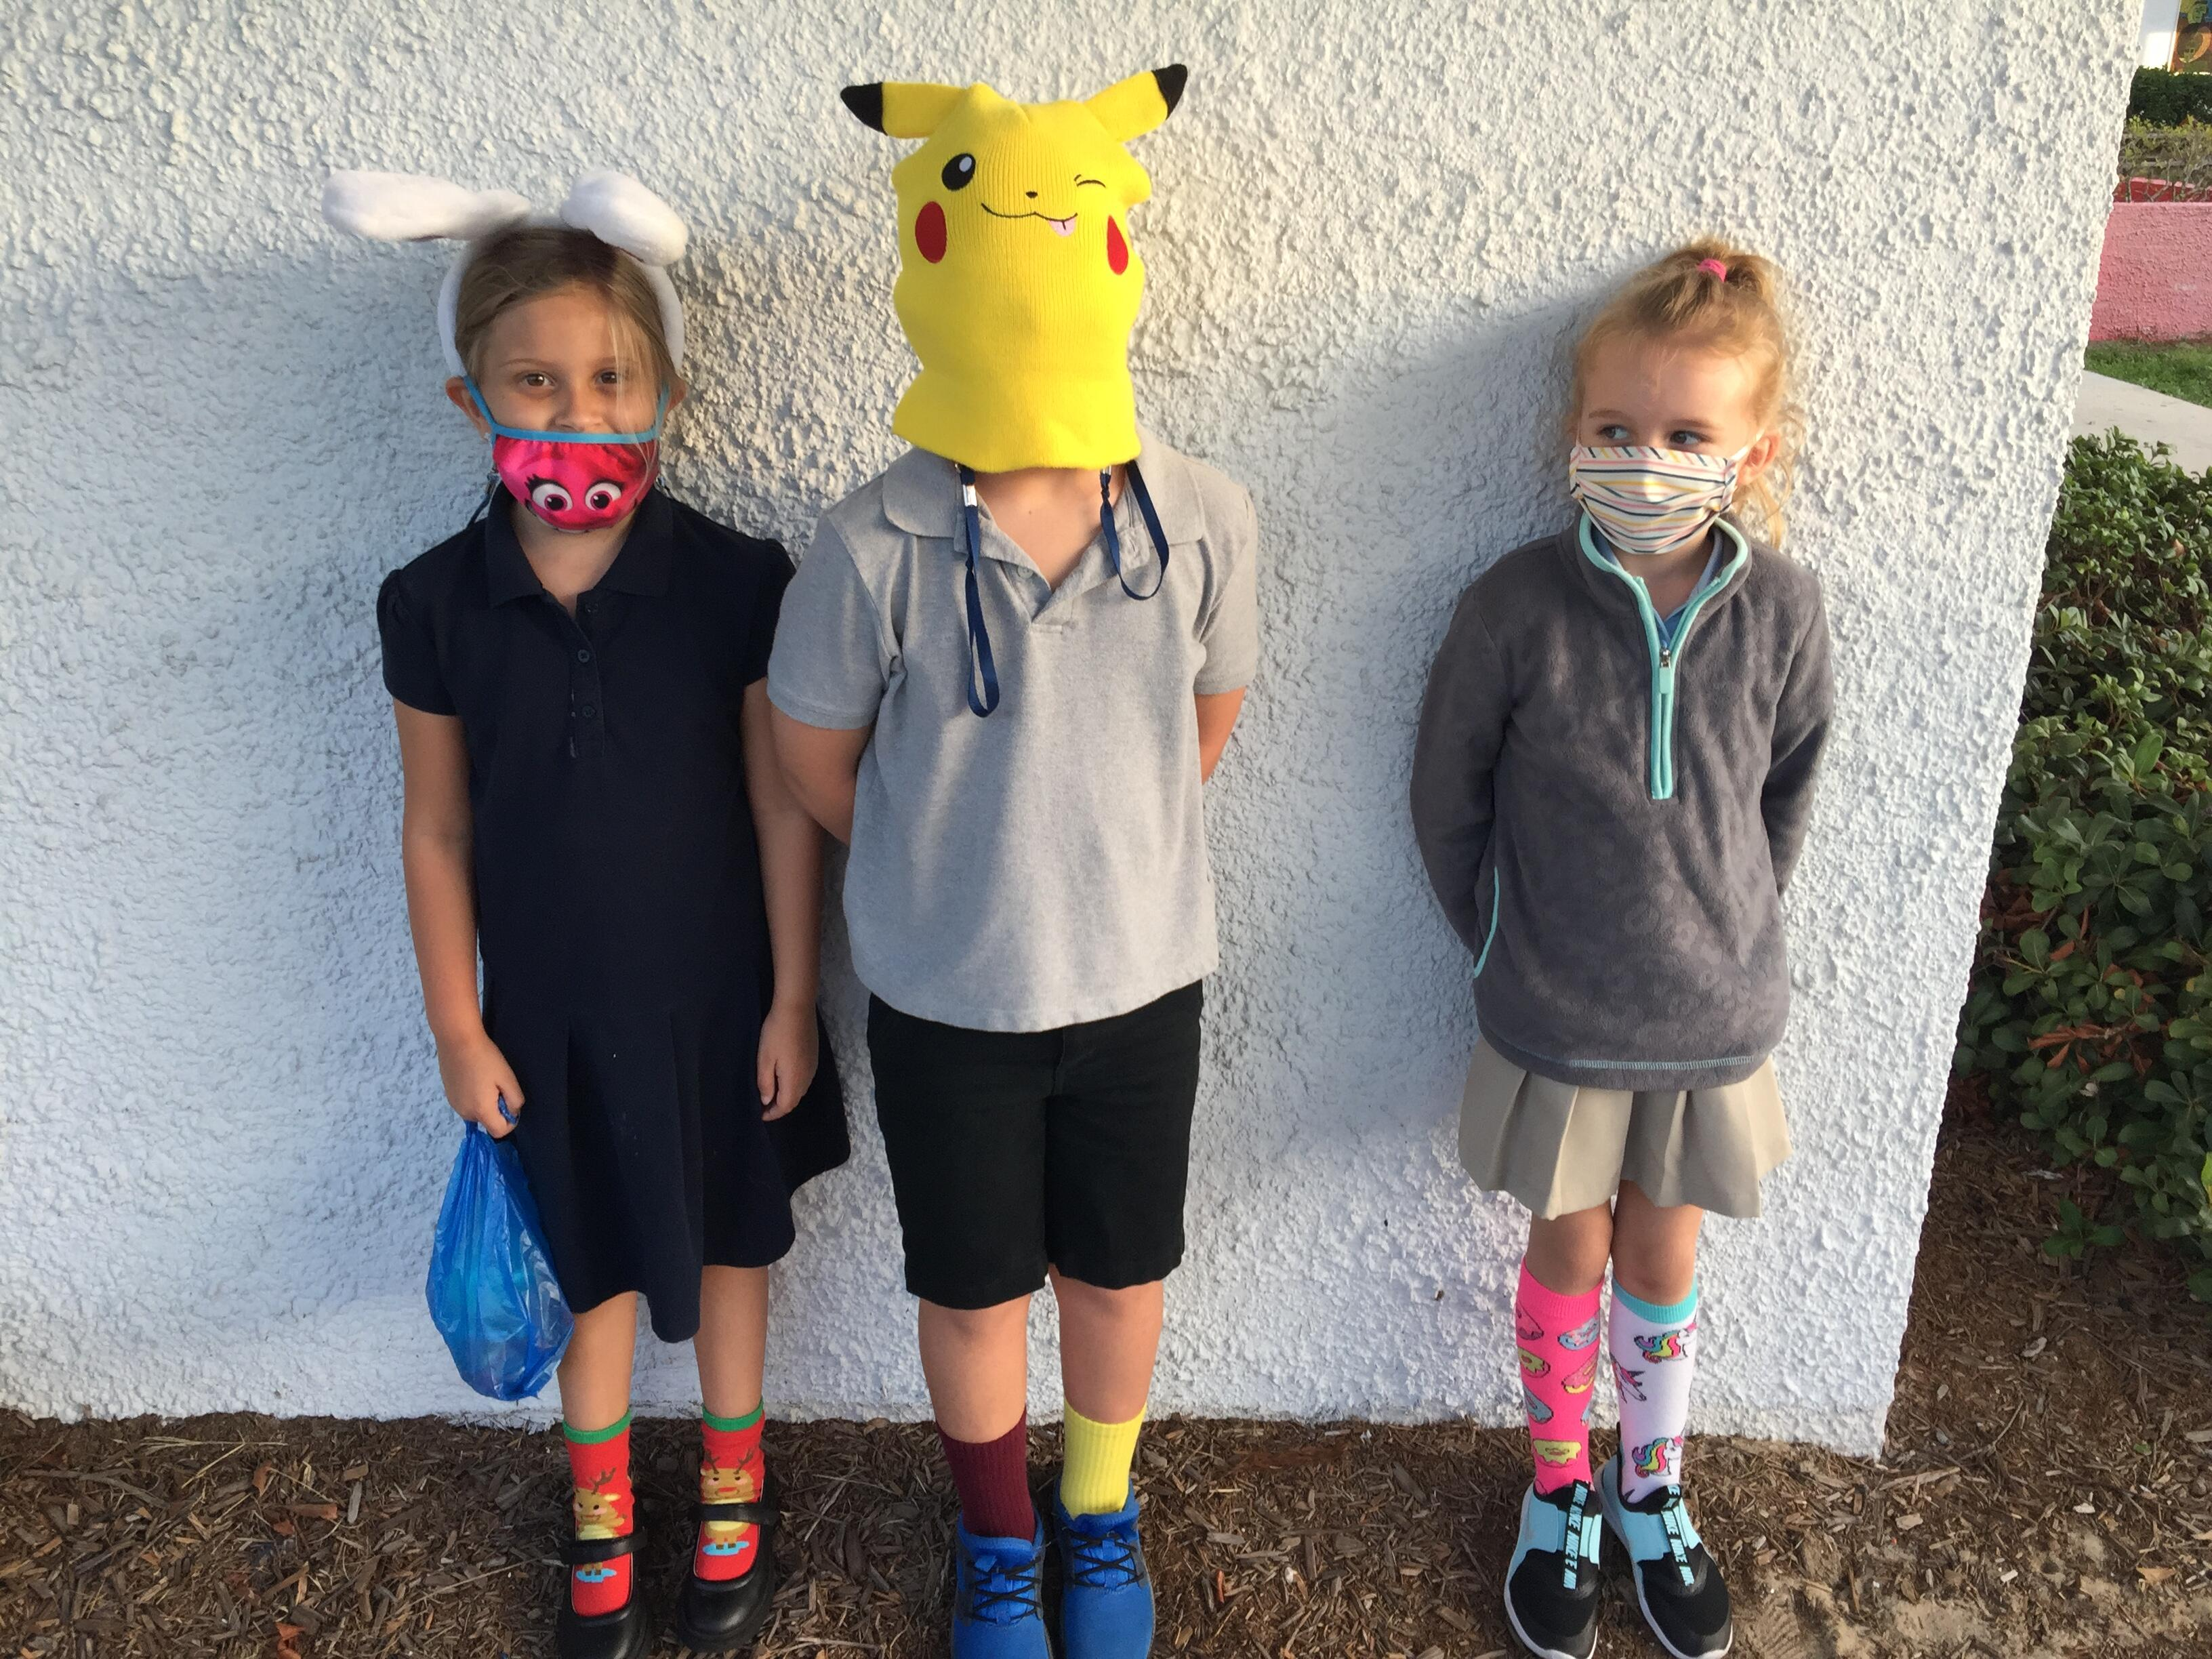 Students wearing Crazy hats and socks